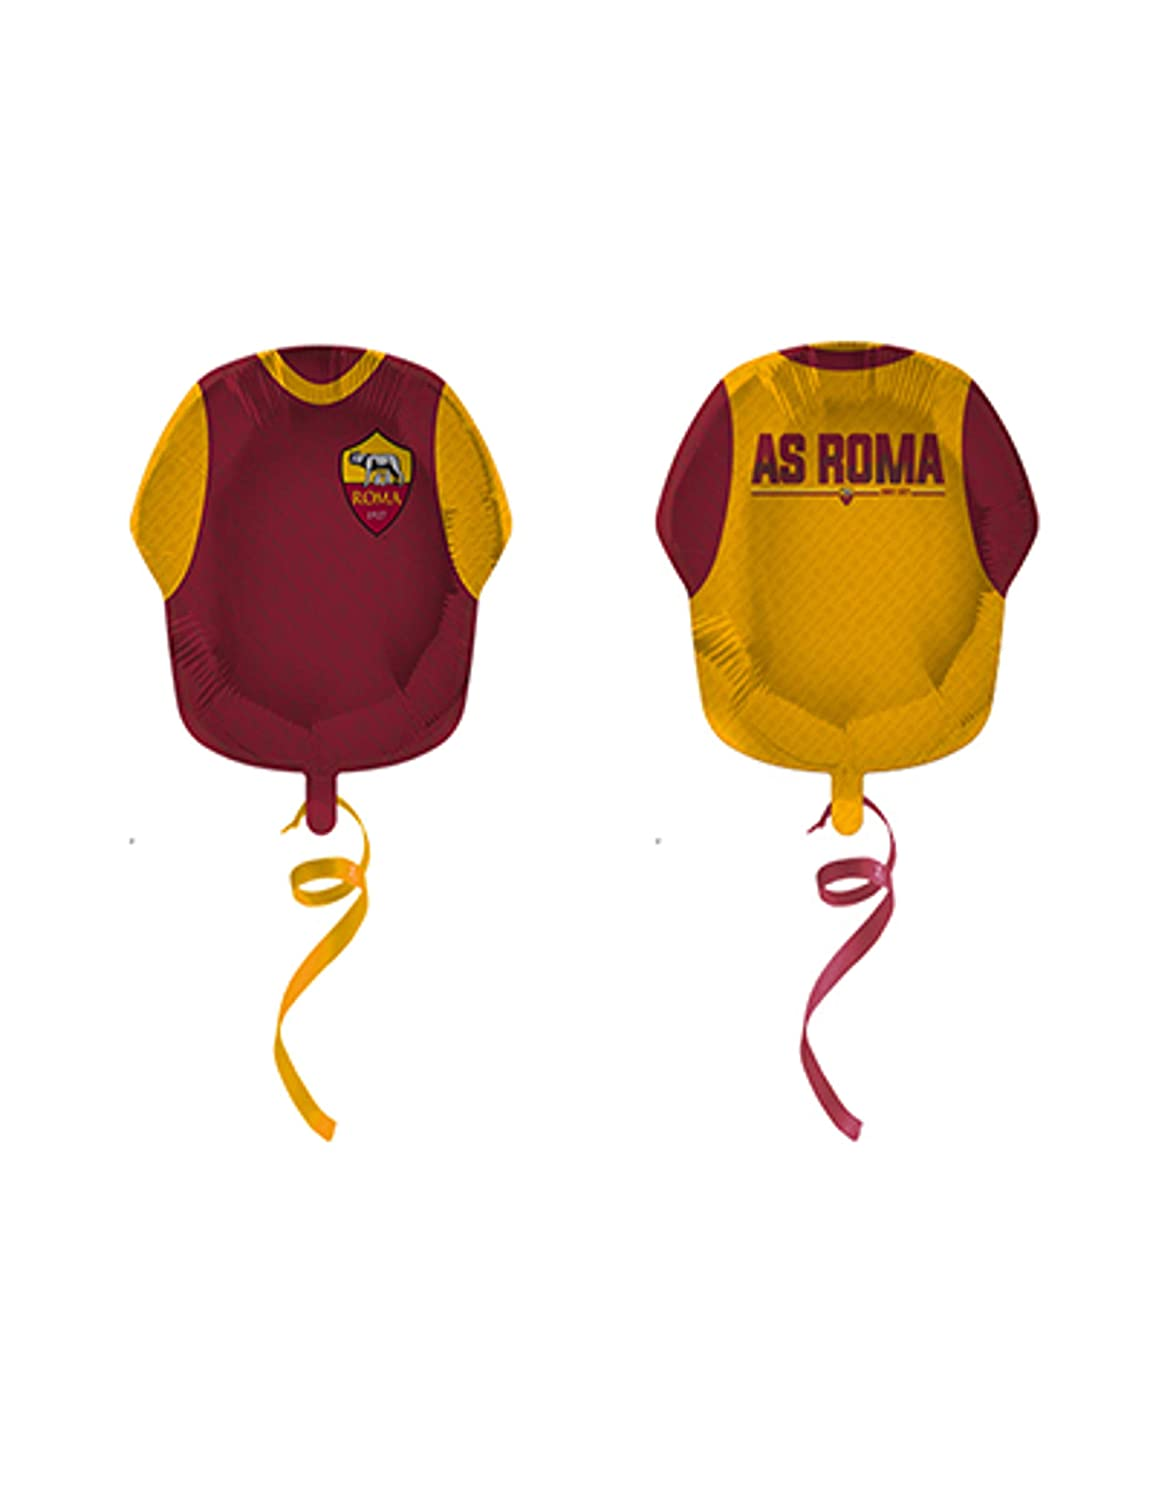 BIGIEMME 6B810005 - Globo Supershape Camiseta AS Roma 55 cm balón ...